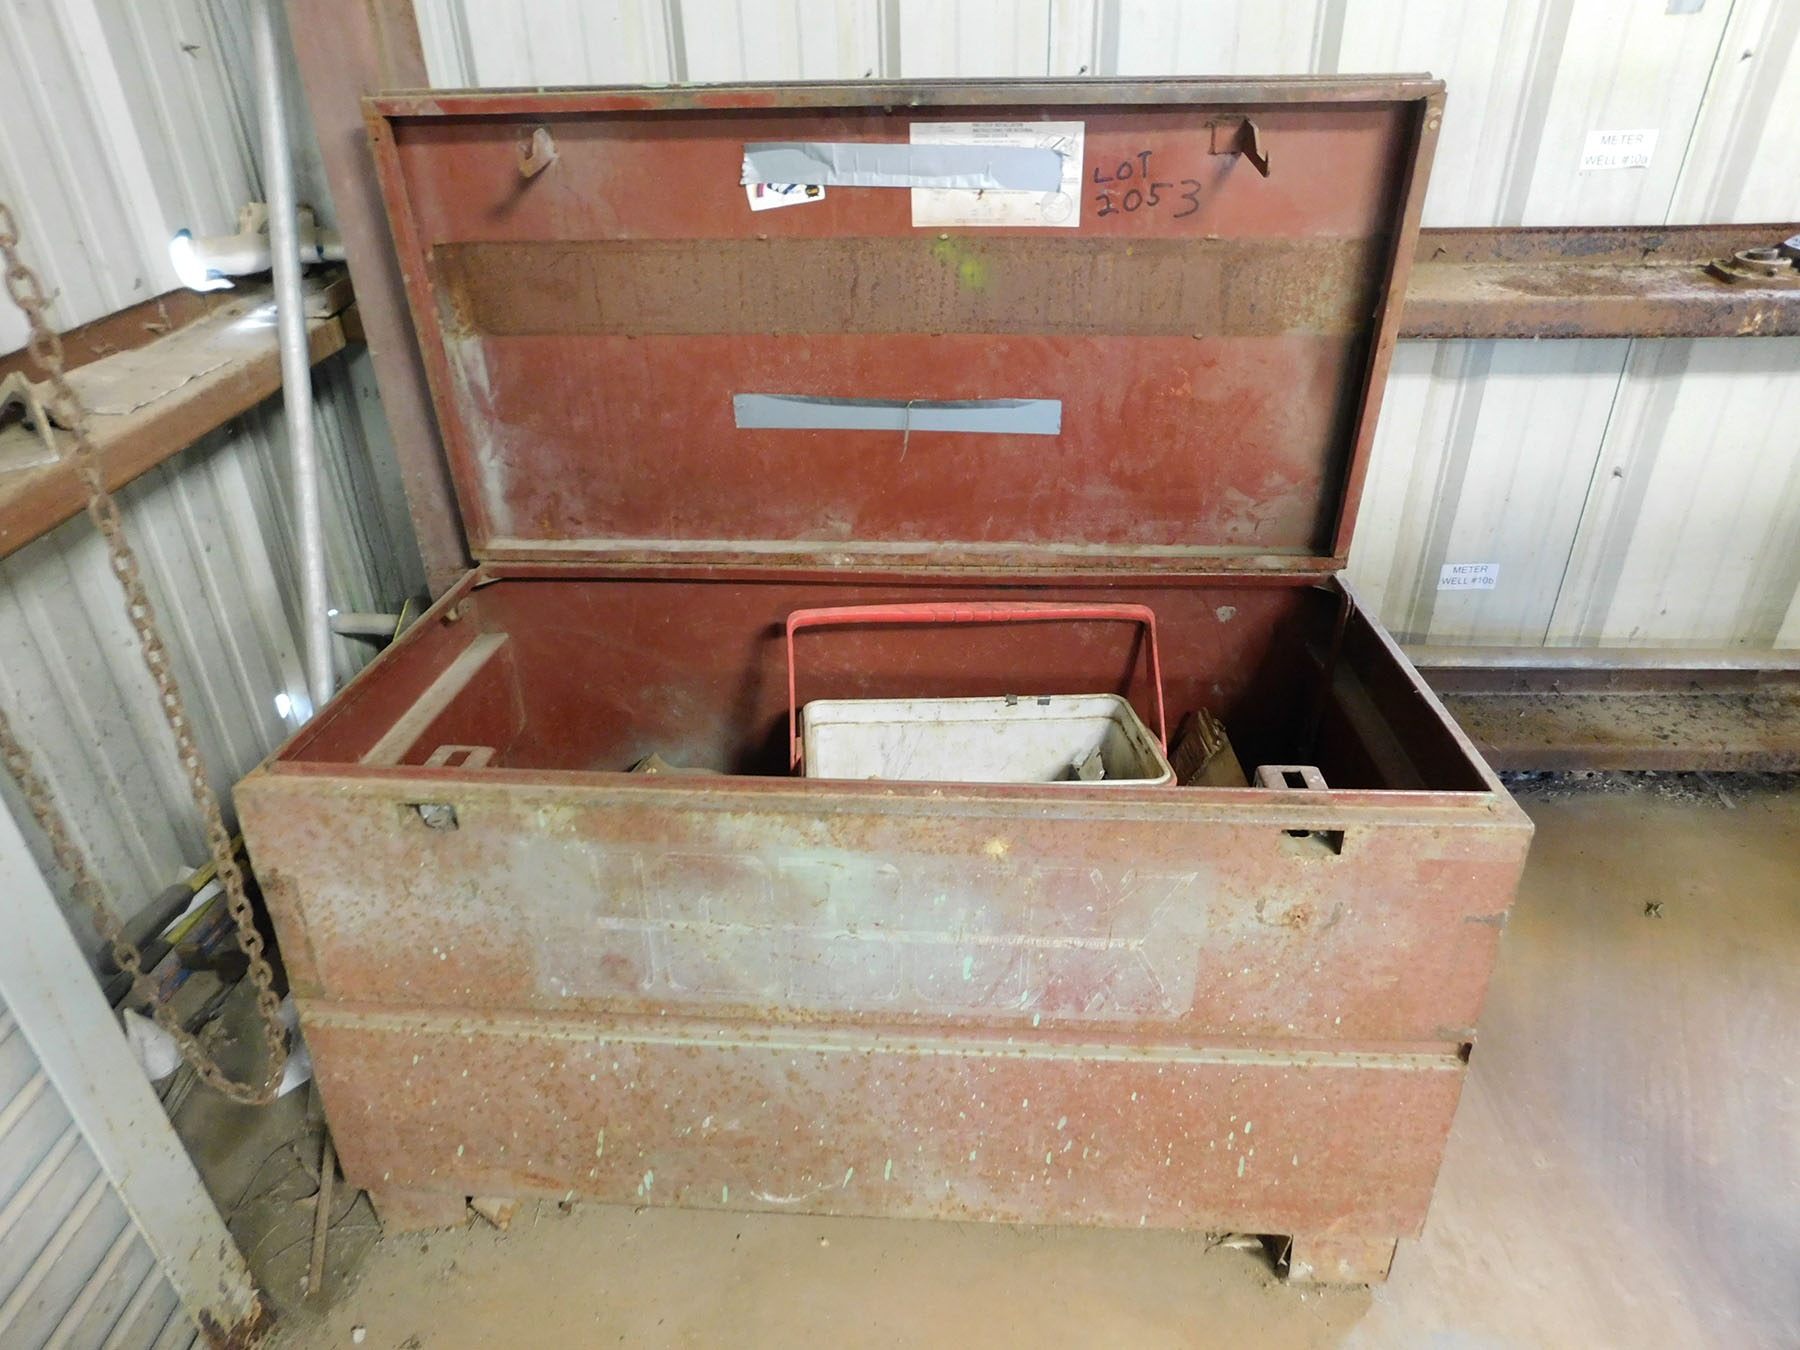 Lot 2053 - JOBOX WITH CONTENT